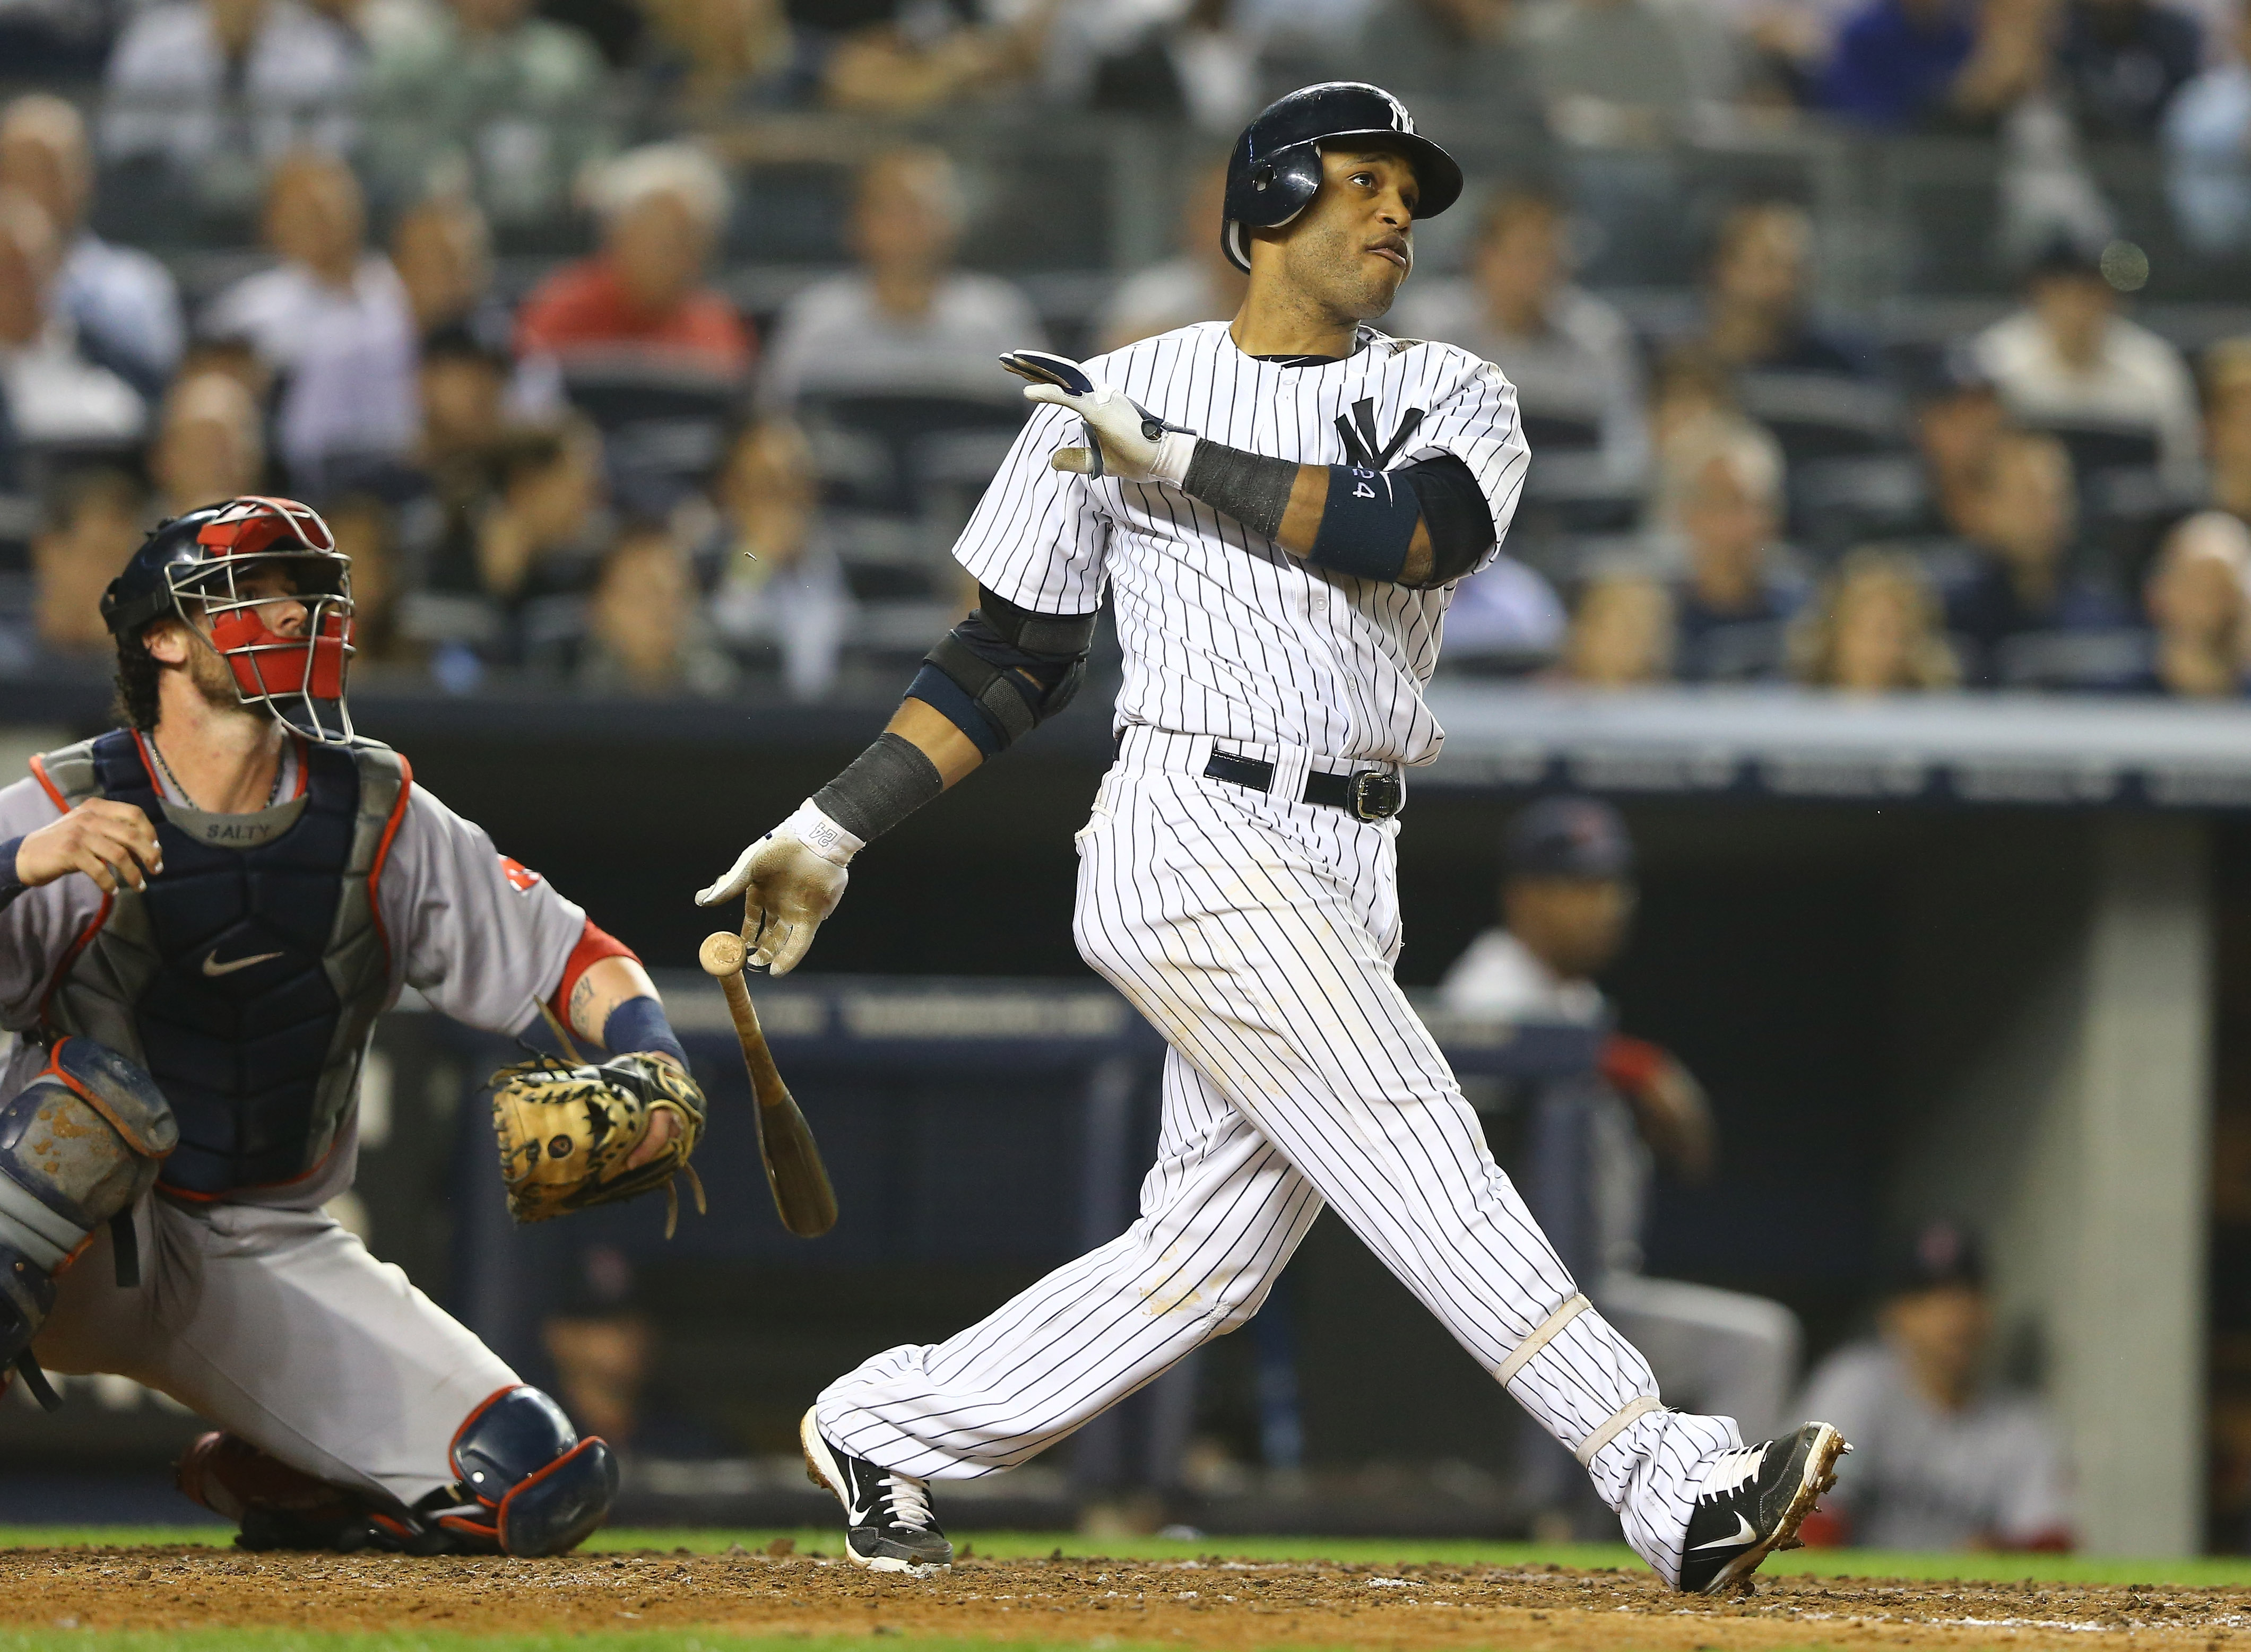 Robinson Cano hit two home runs as the Yankees routed the Red Sox 14-2. (Getty Images)